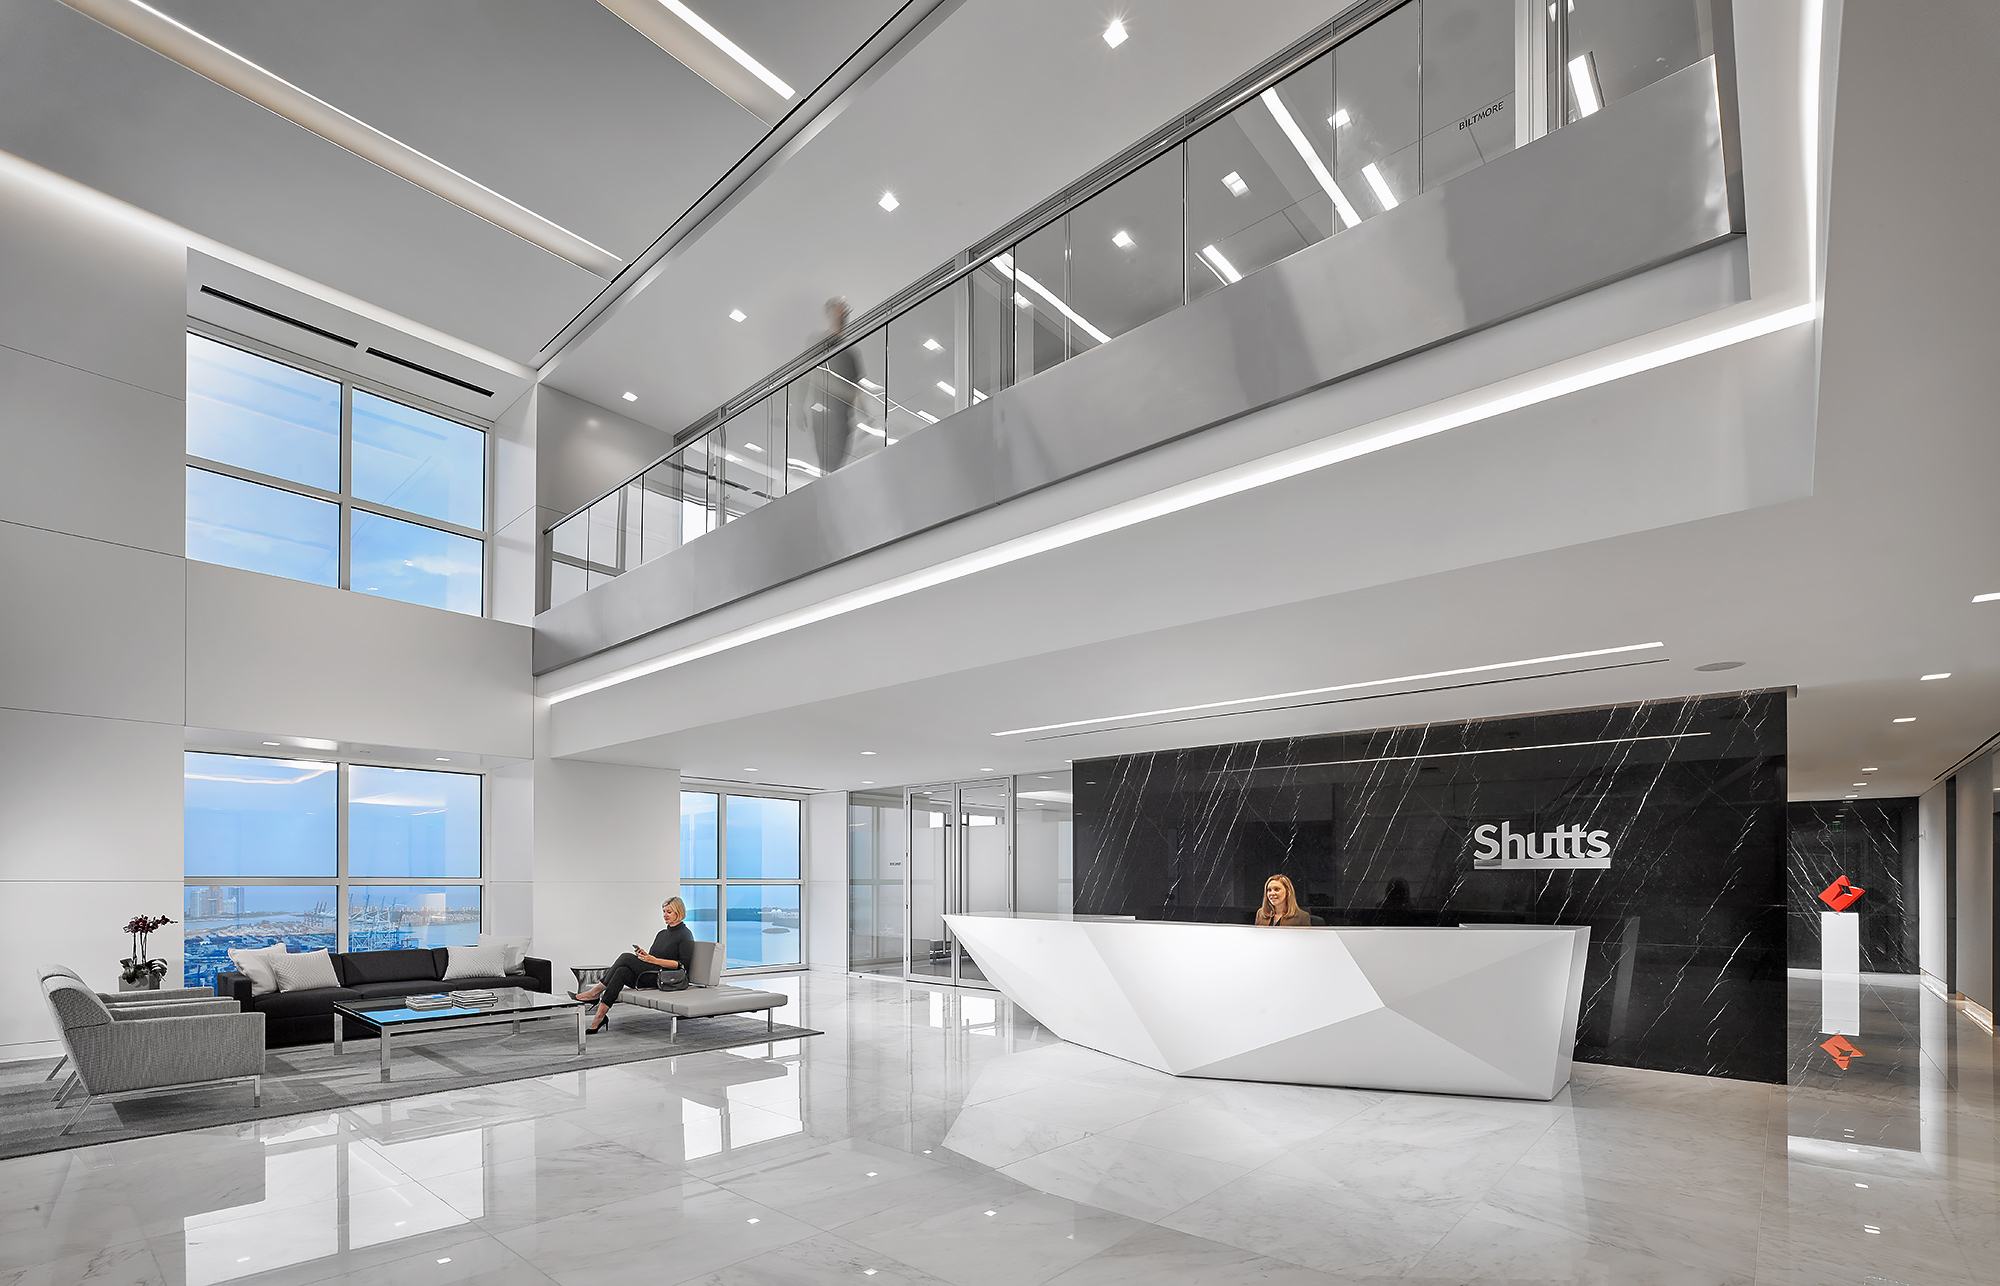 Commercial-Interior-Architecture-Photography-Shutts-Lobby